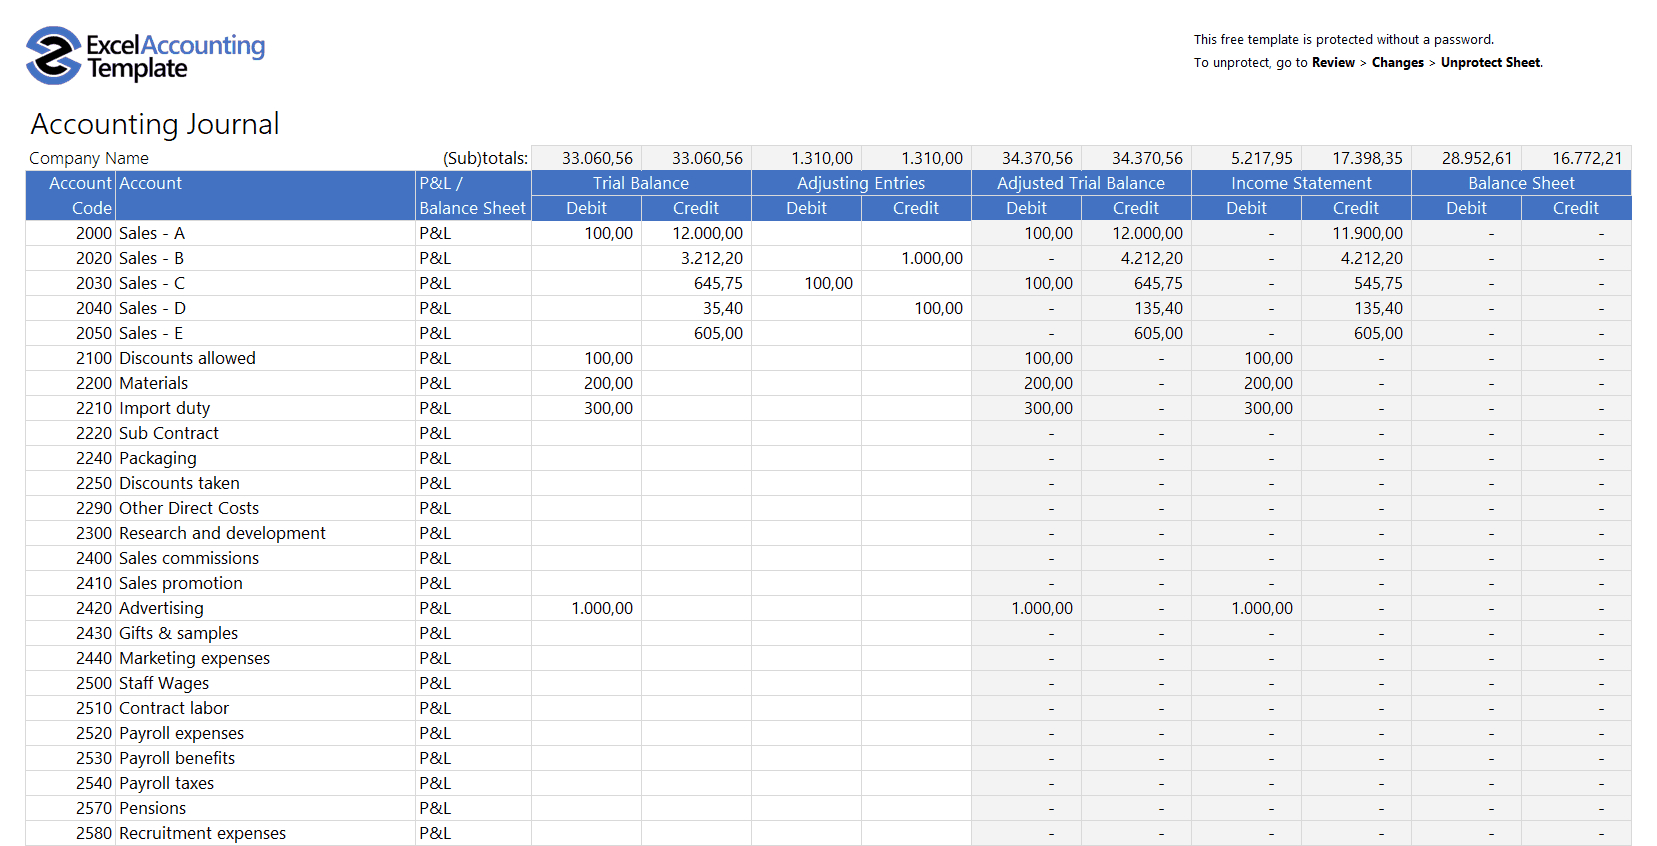 Free Accounting Templates In Excel - Download For Your Business And Accounting Templates Excel Worksheets